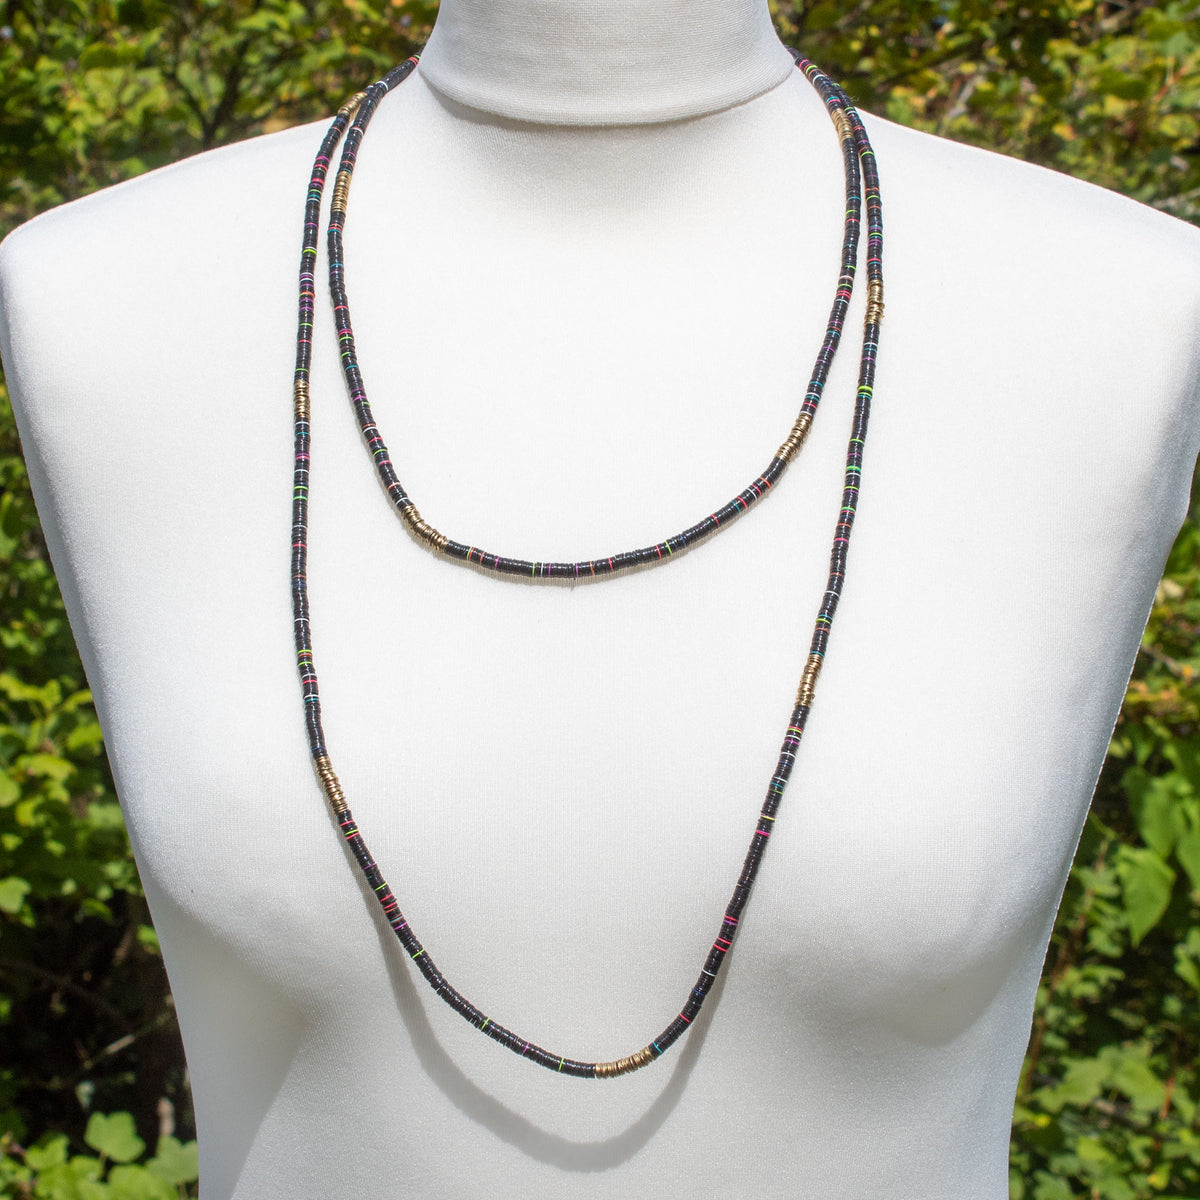 Extra-Long Black Sequin Necklace | Necklace - The Naughty Shrew